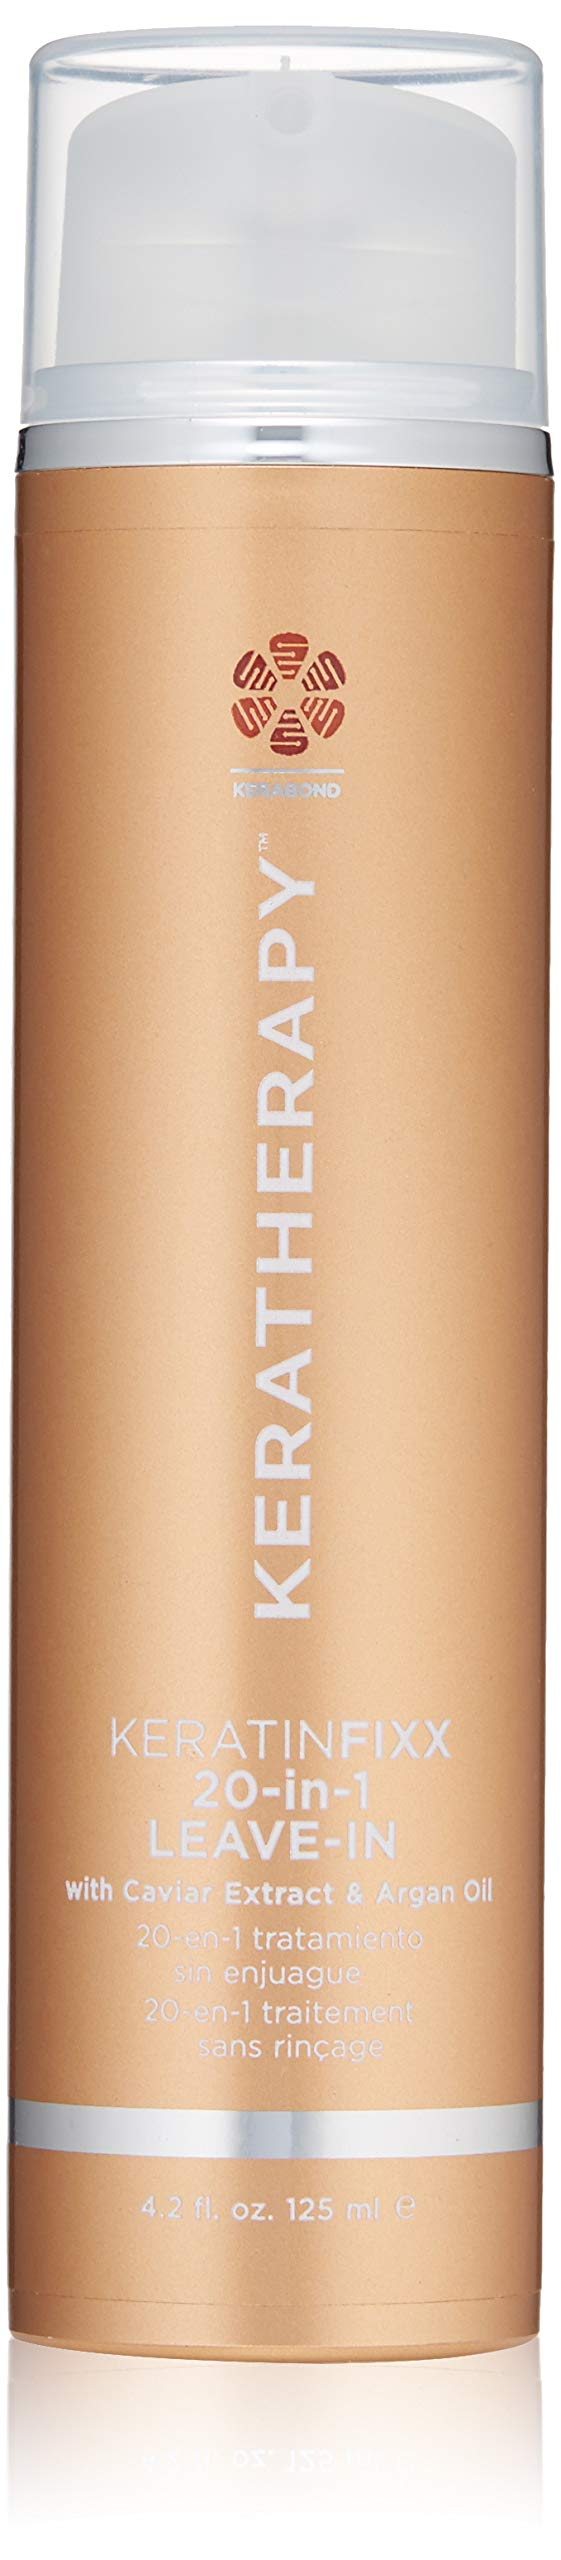 KERATHERAPY KERATINFIXX 20-in-1 Leave In 4.2 Fl Oz by KERATHERAPY